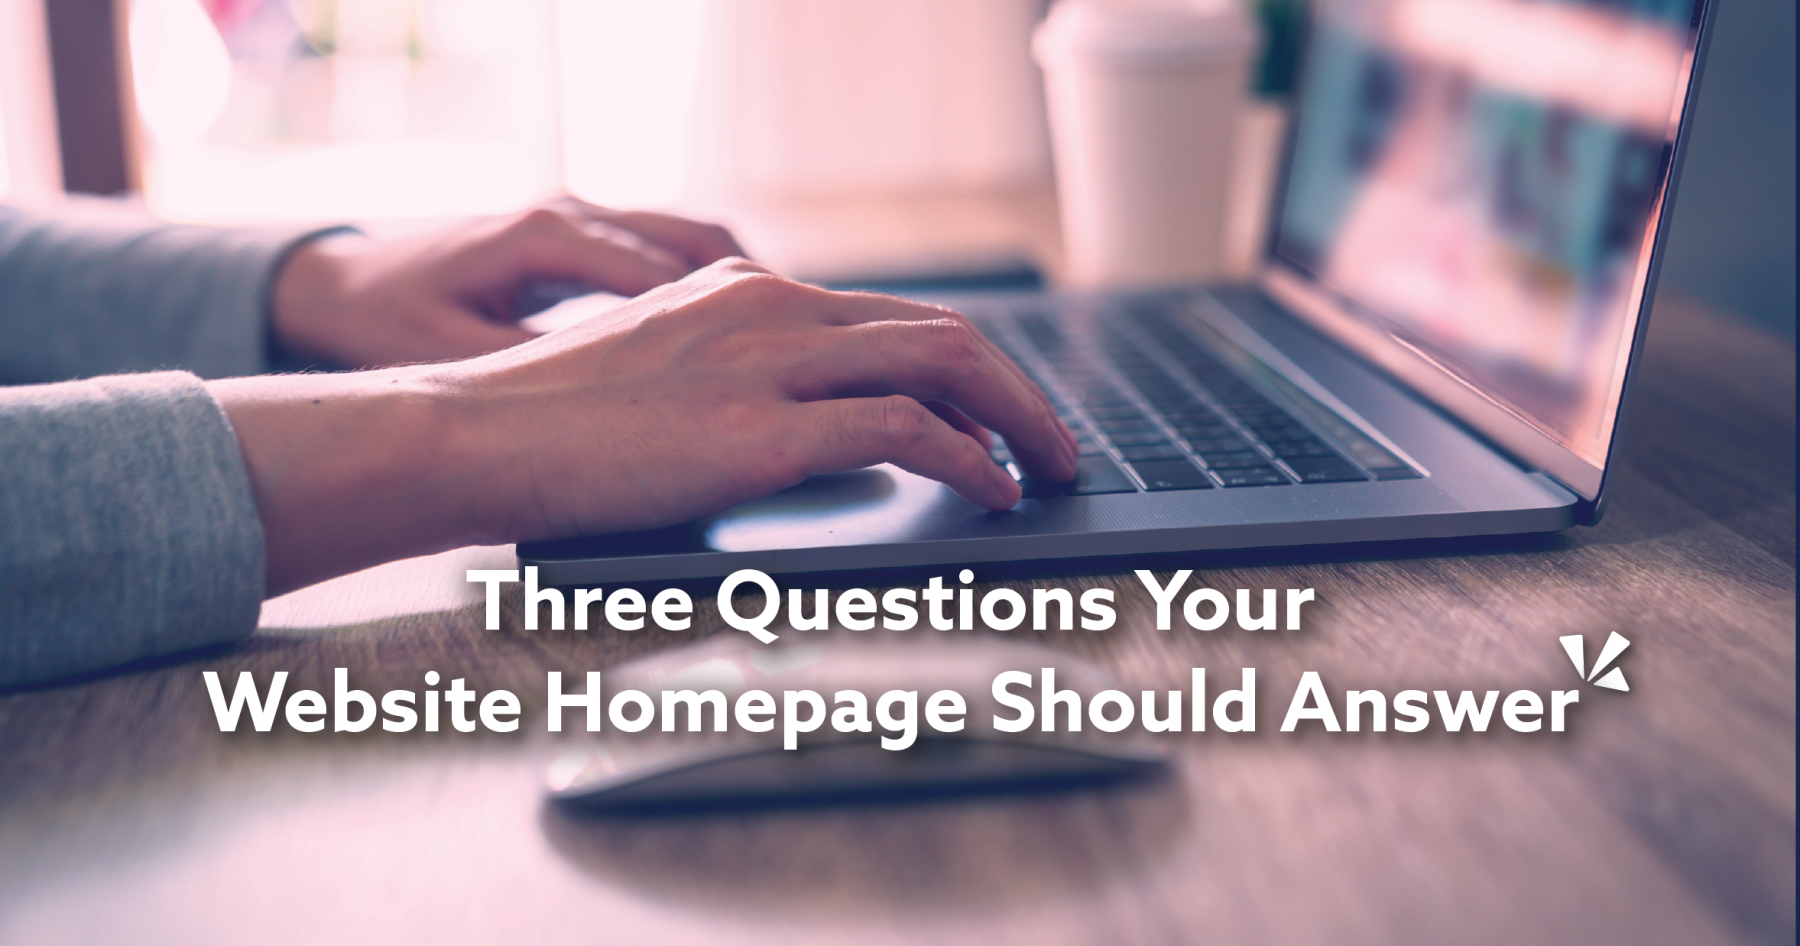 Three questions your website homepage should answer blog description with image of a woman on a laptop